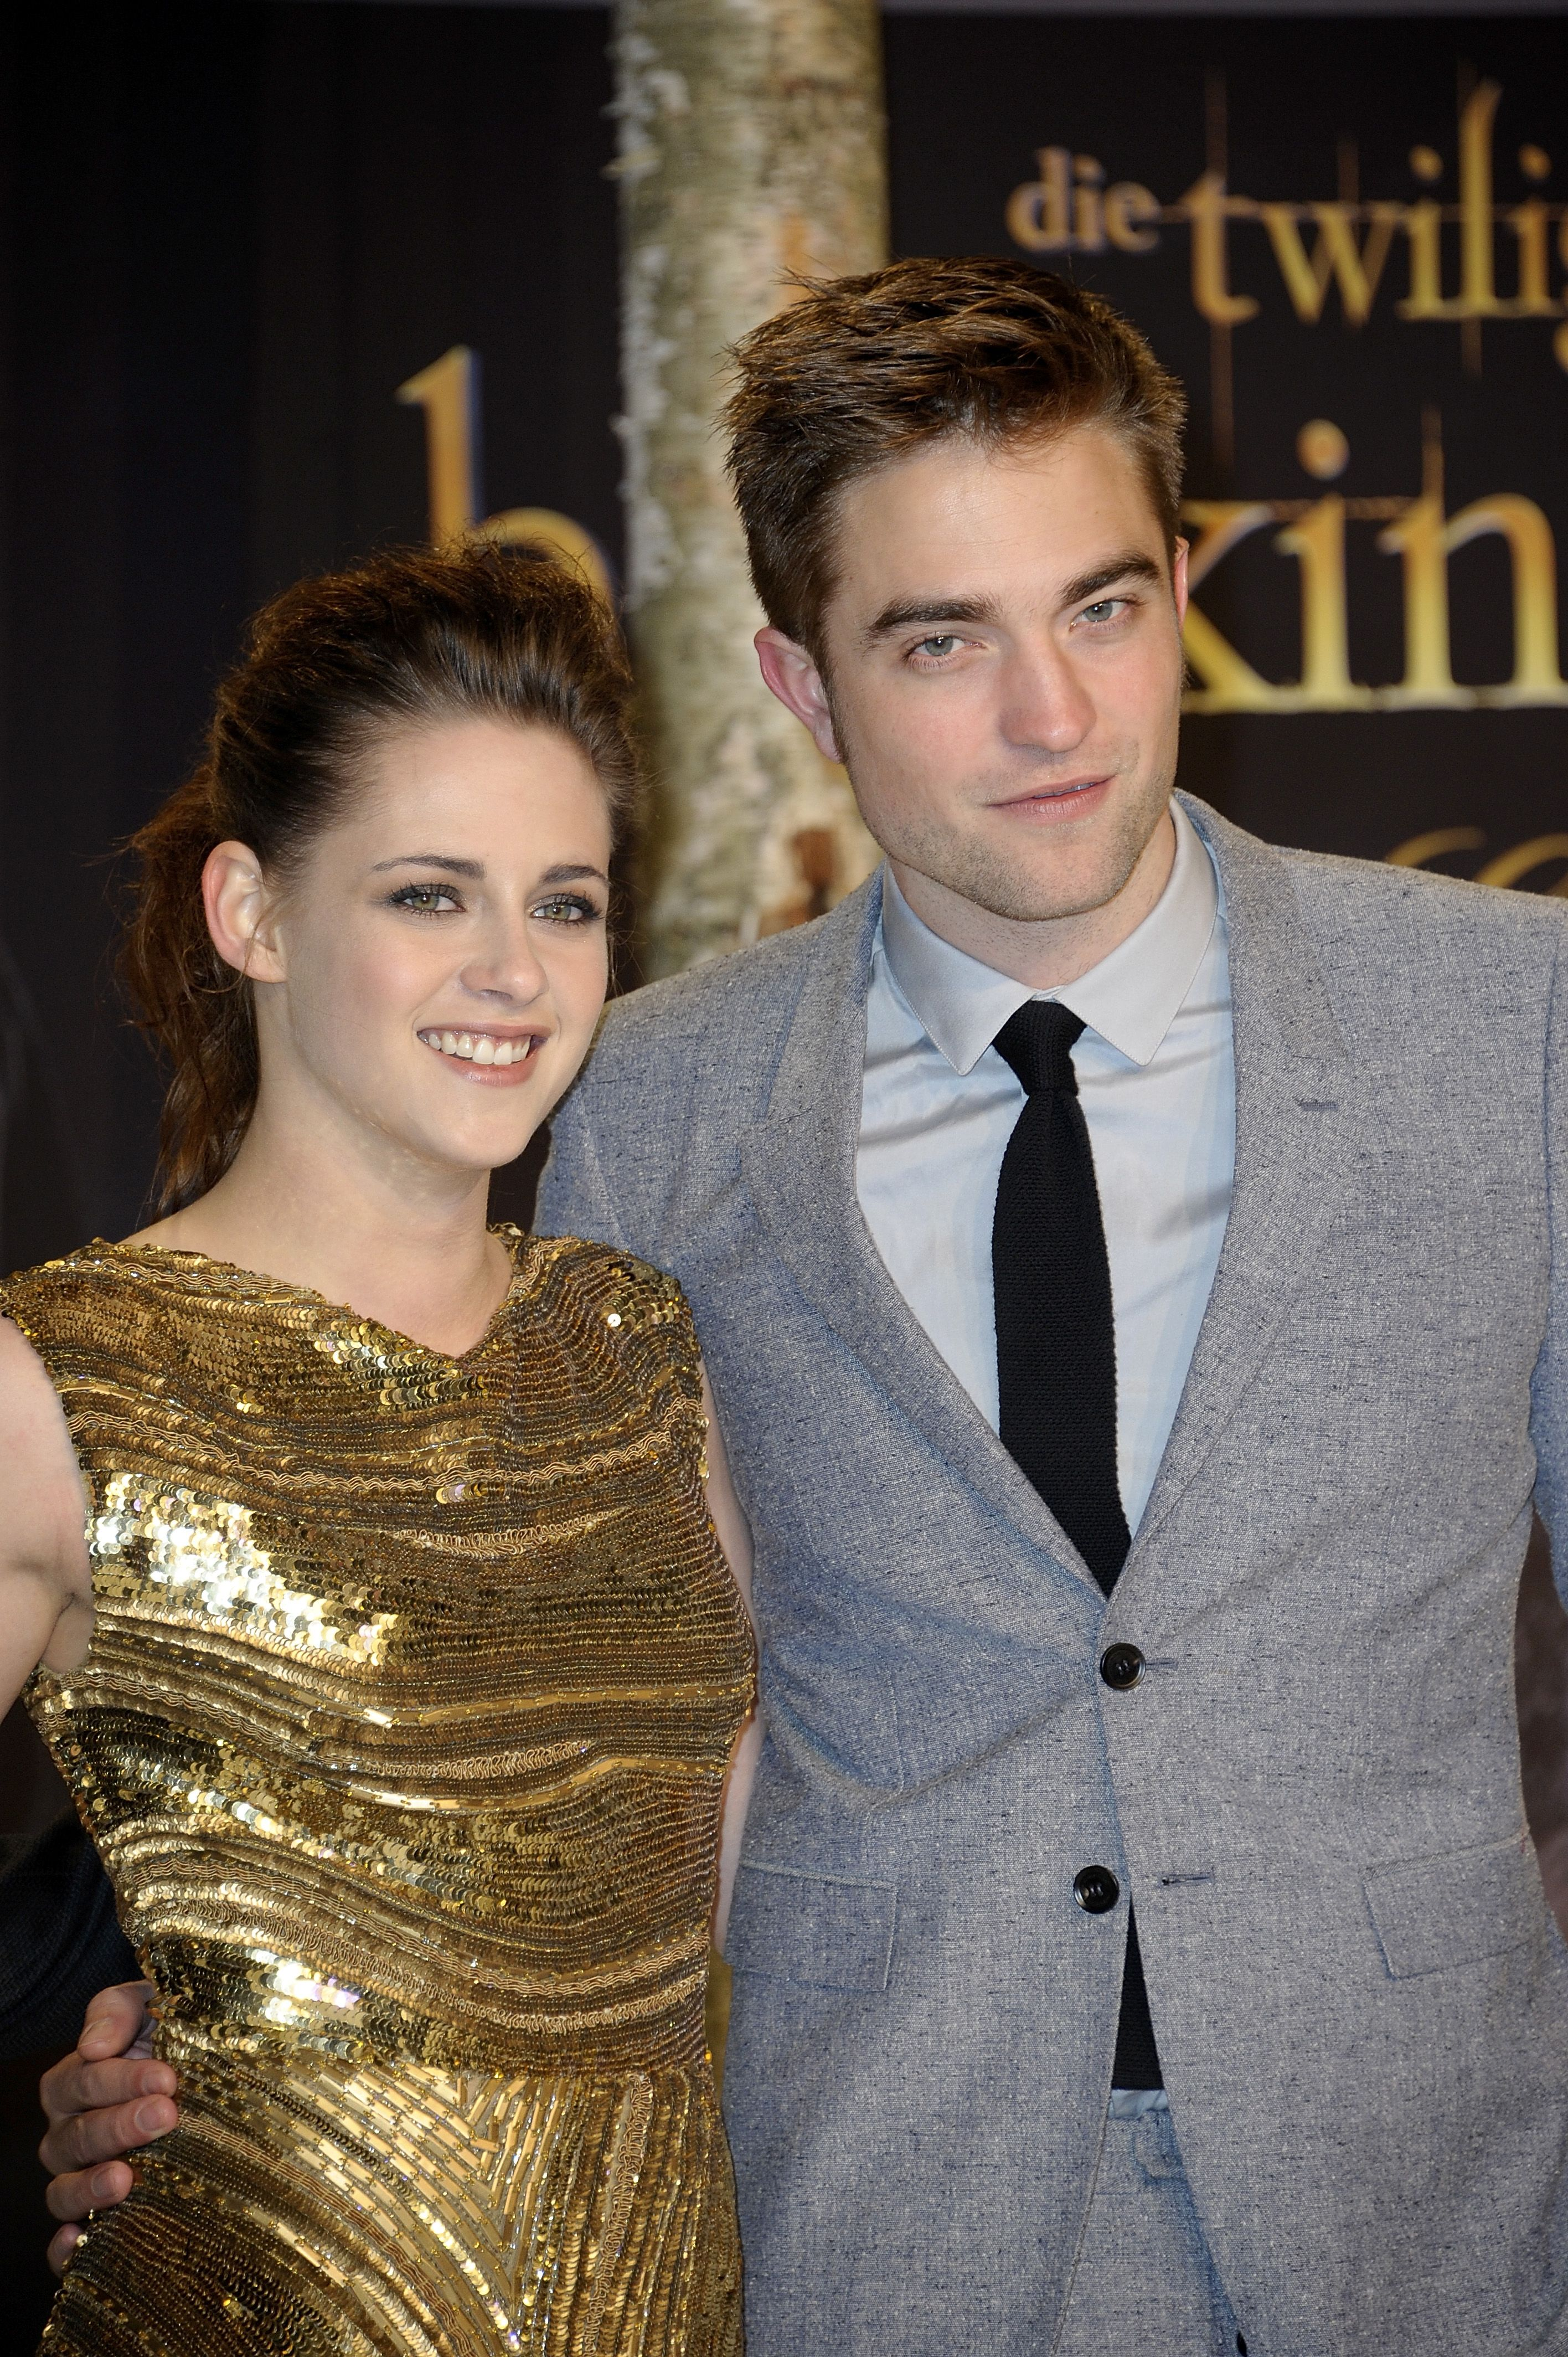 is bella and edward dating in real life